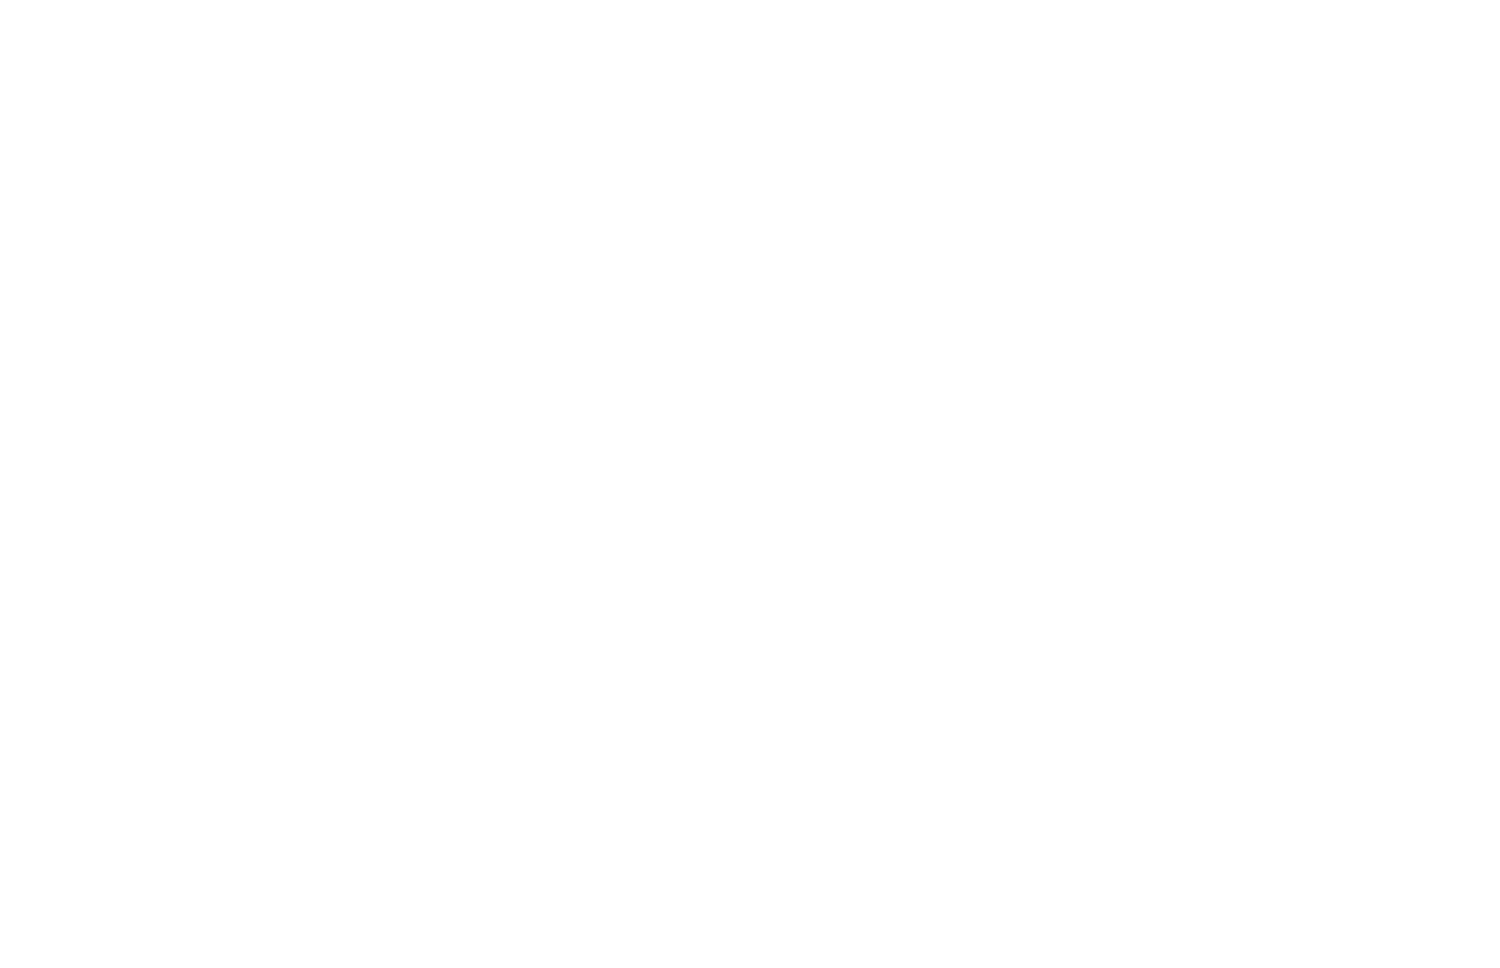 Bend Pet Adventures